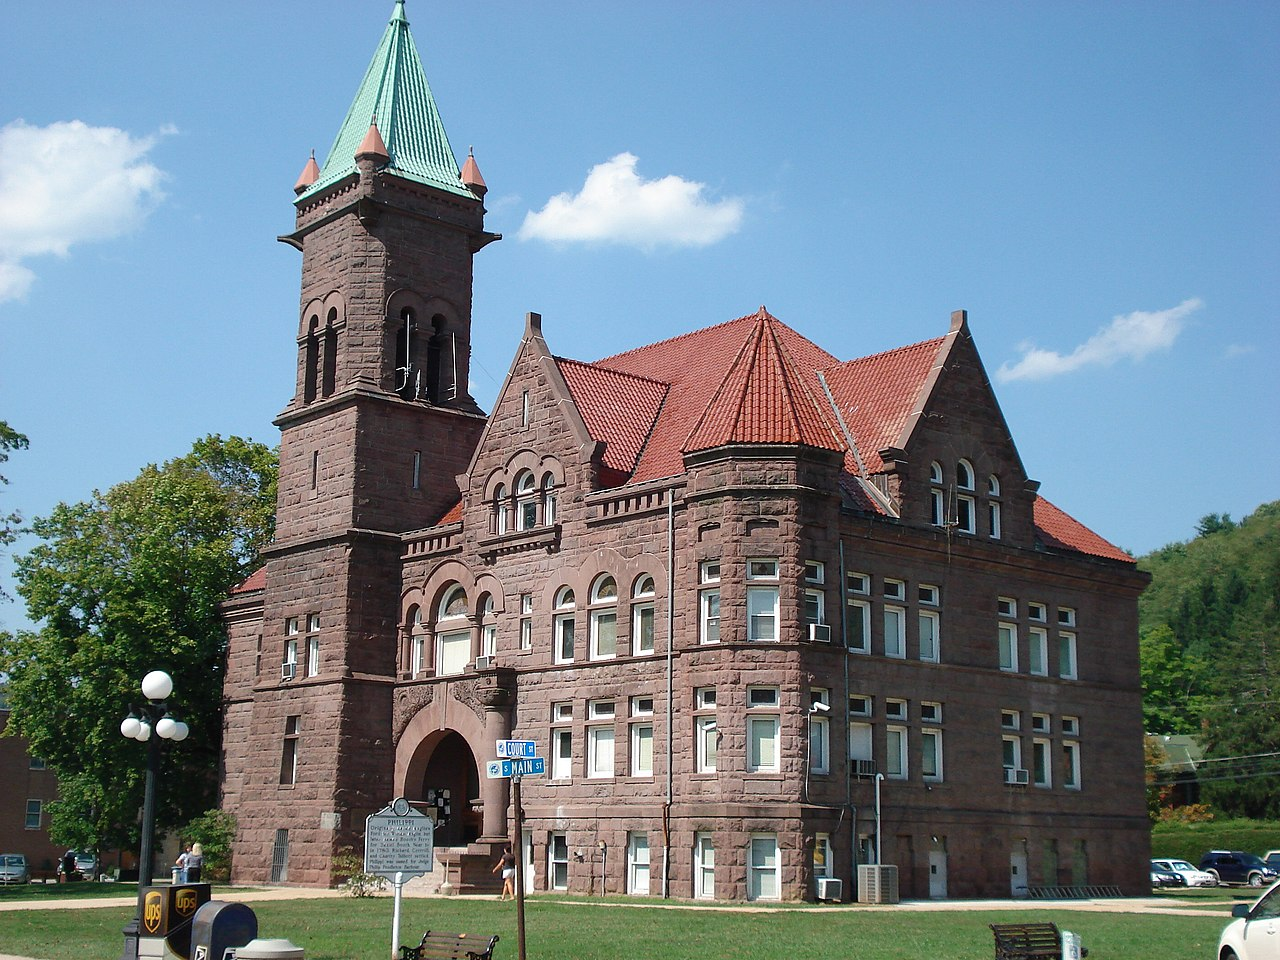 File:BarbourCountyCourthouse.jpg - Wikimedia Commonsbalance of barbour county